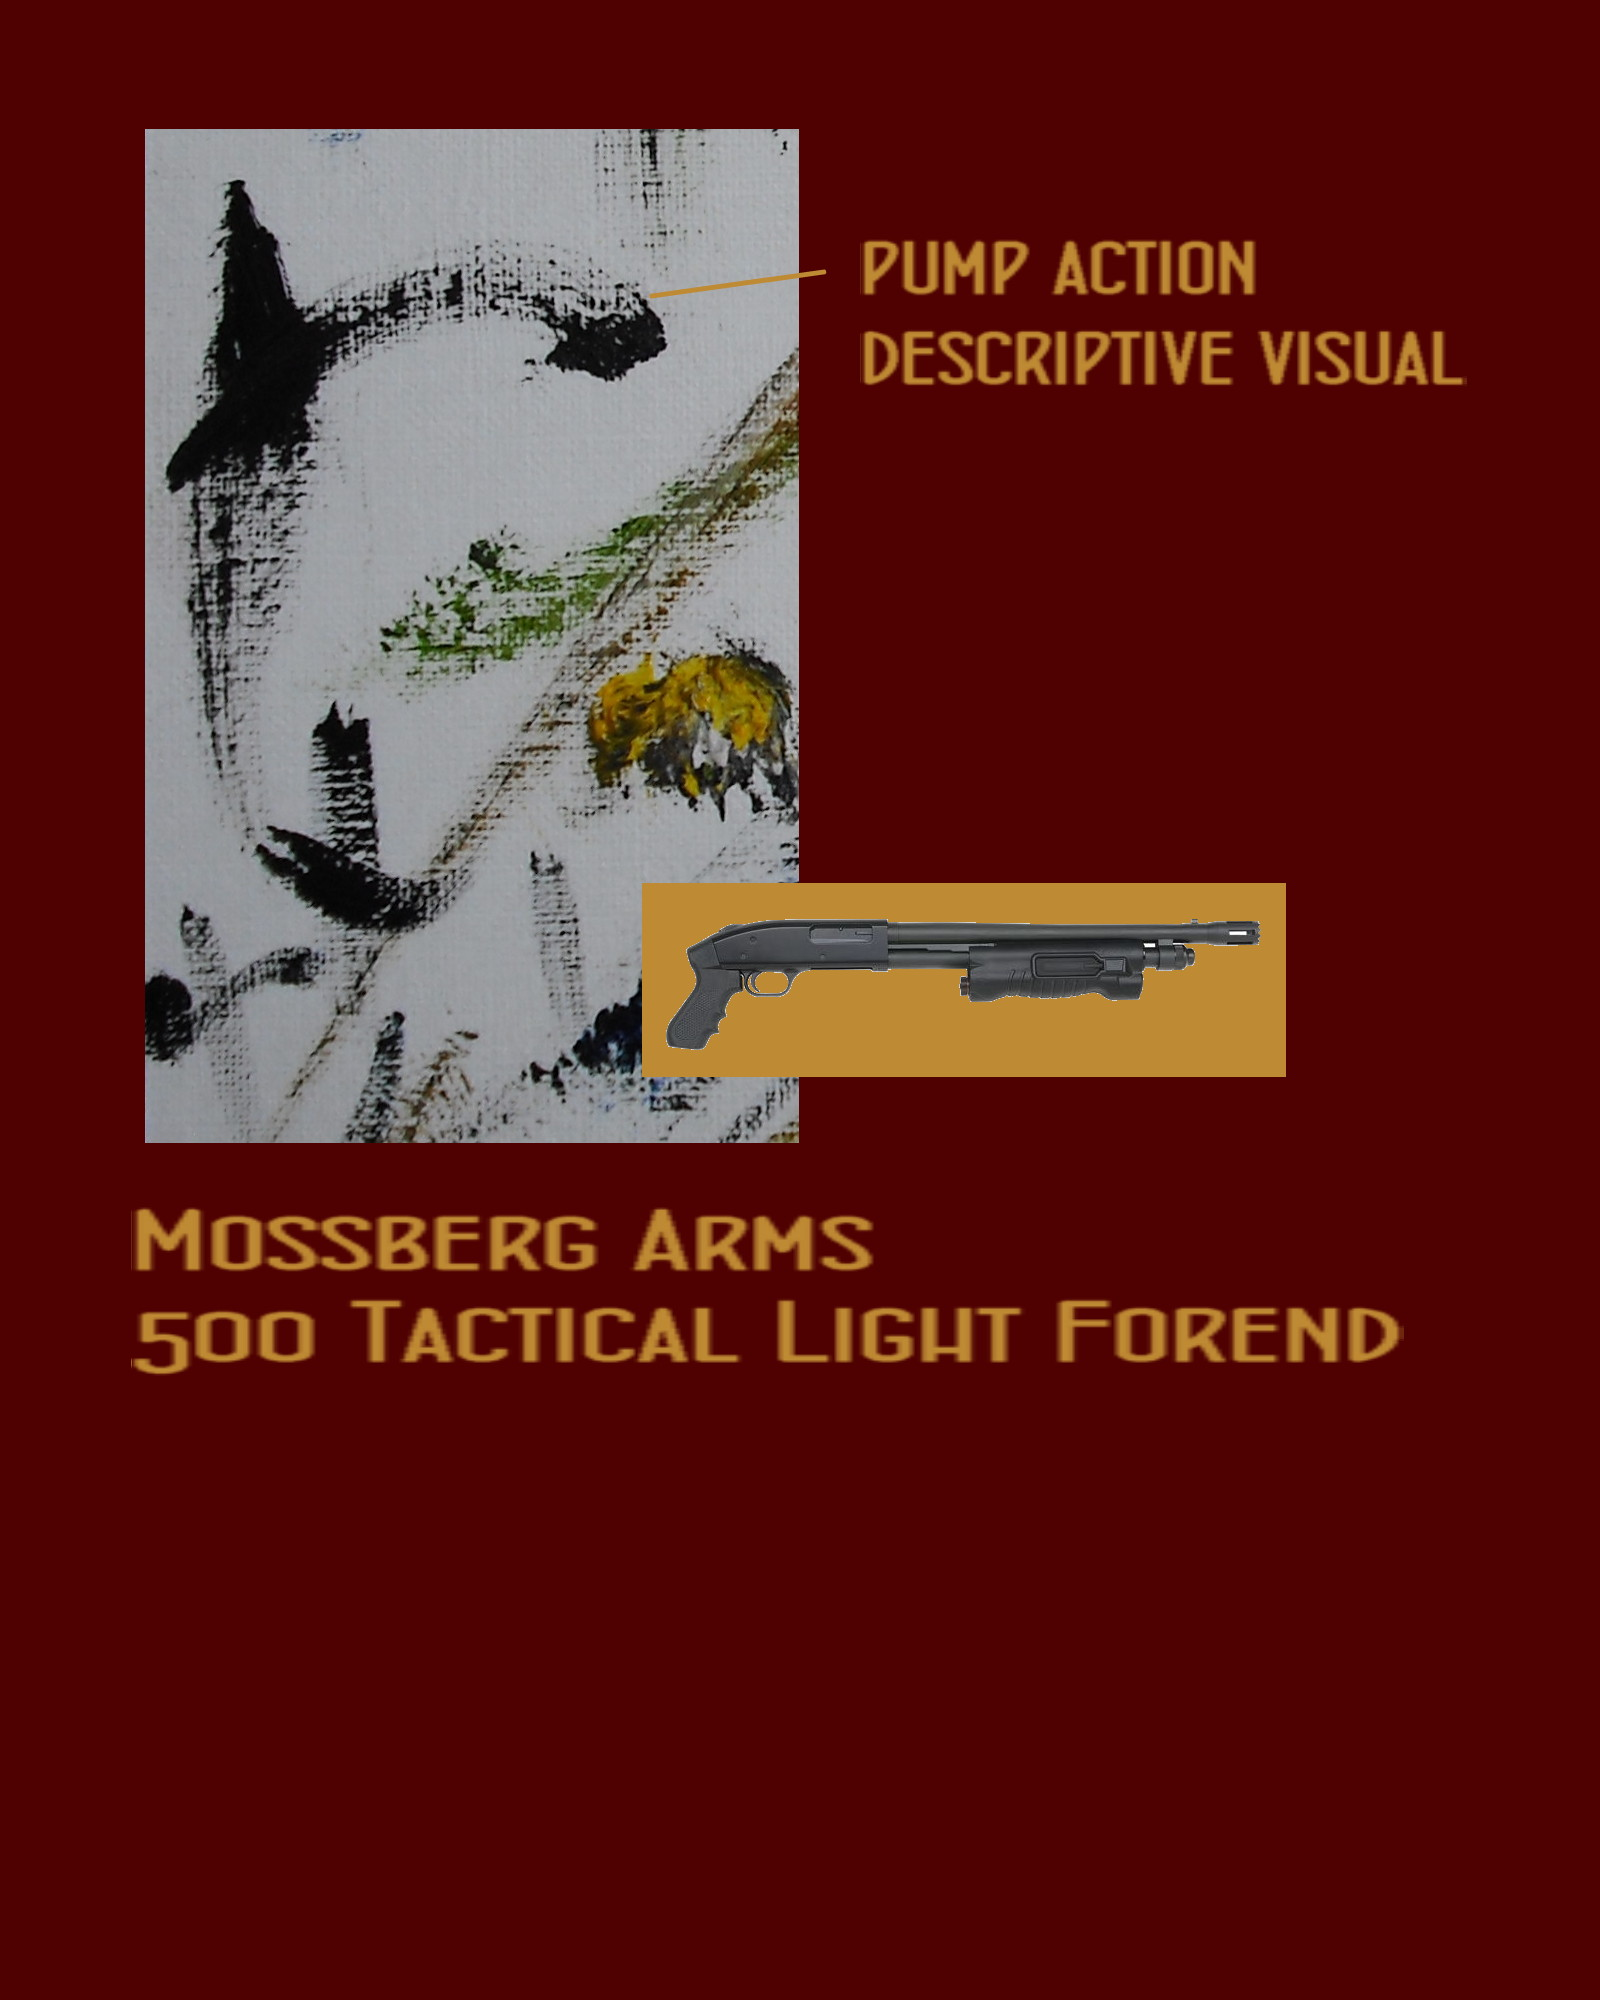 mossberg arms tactical light